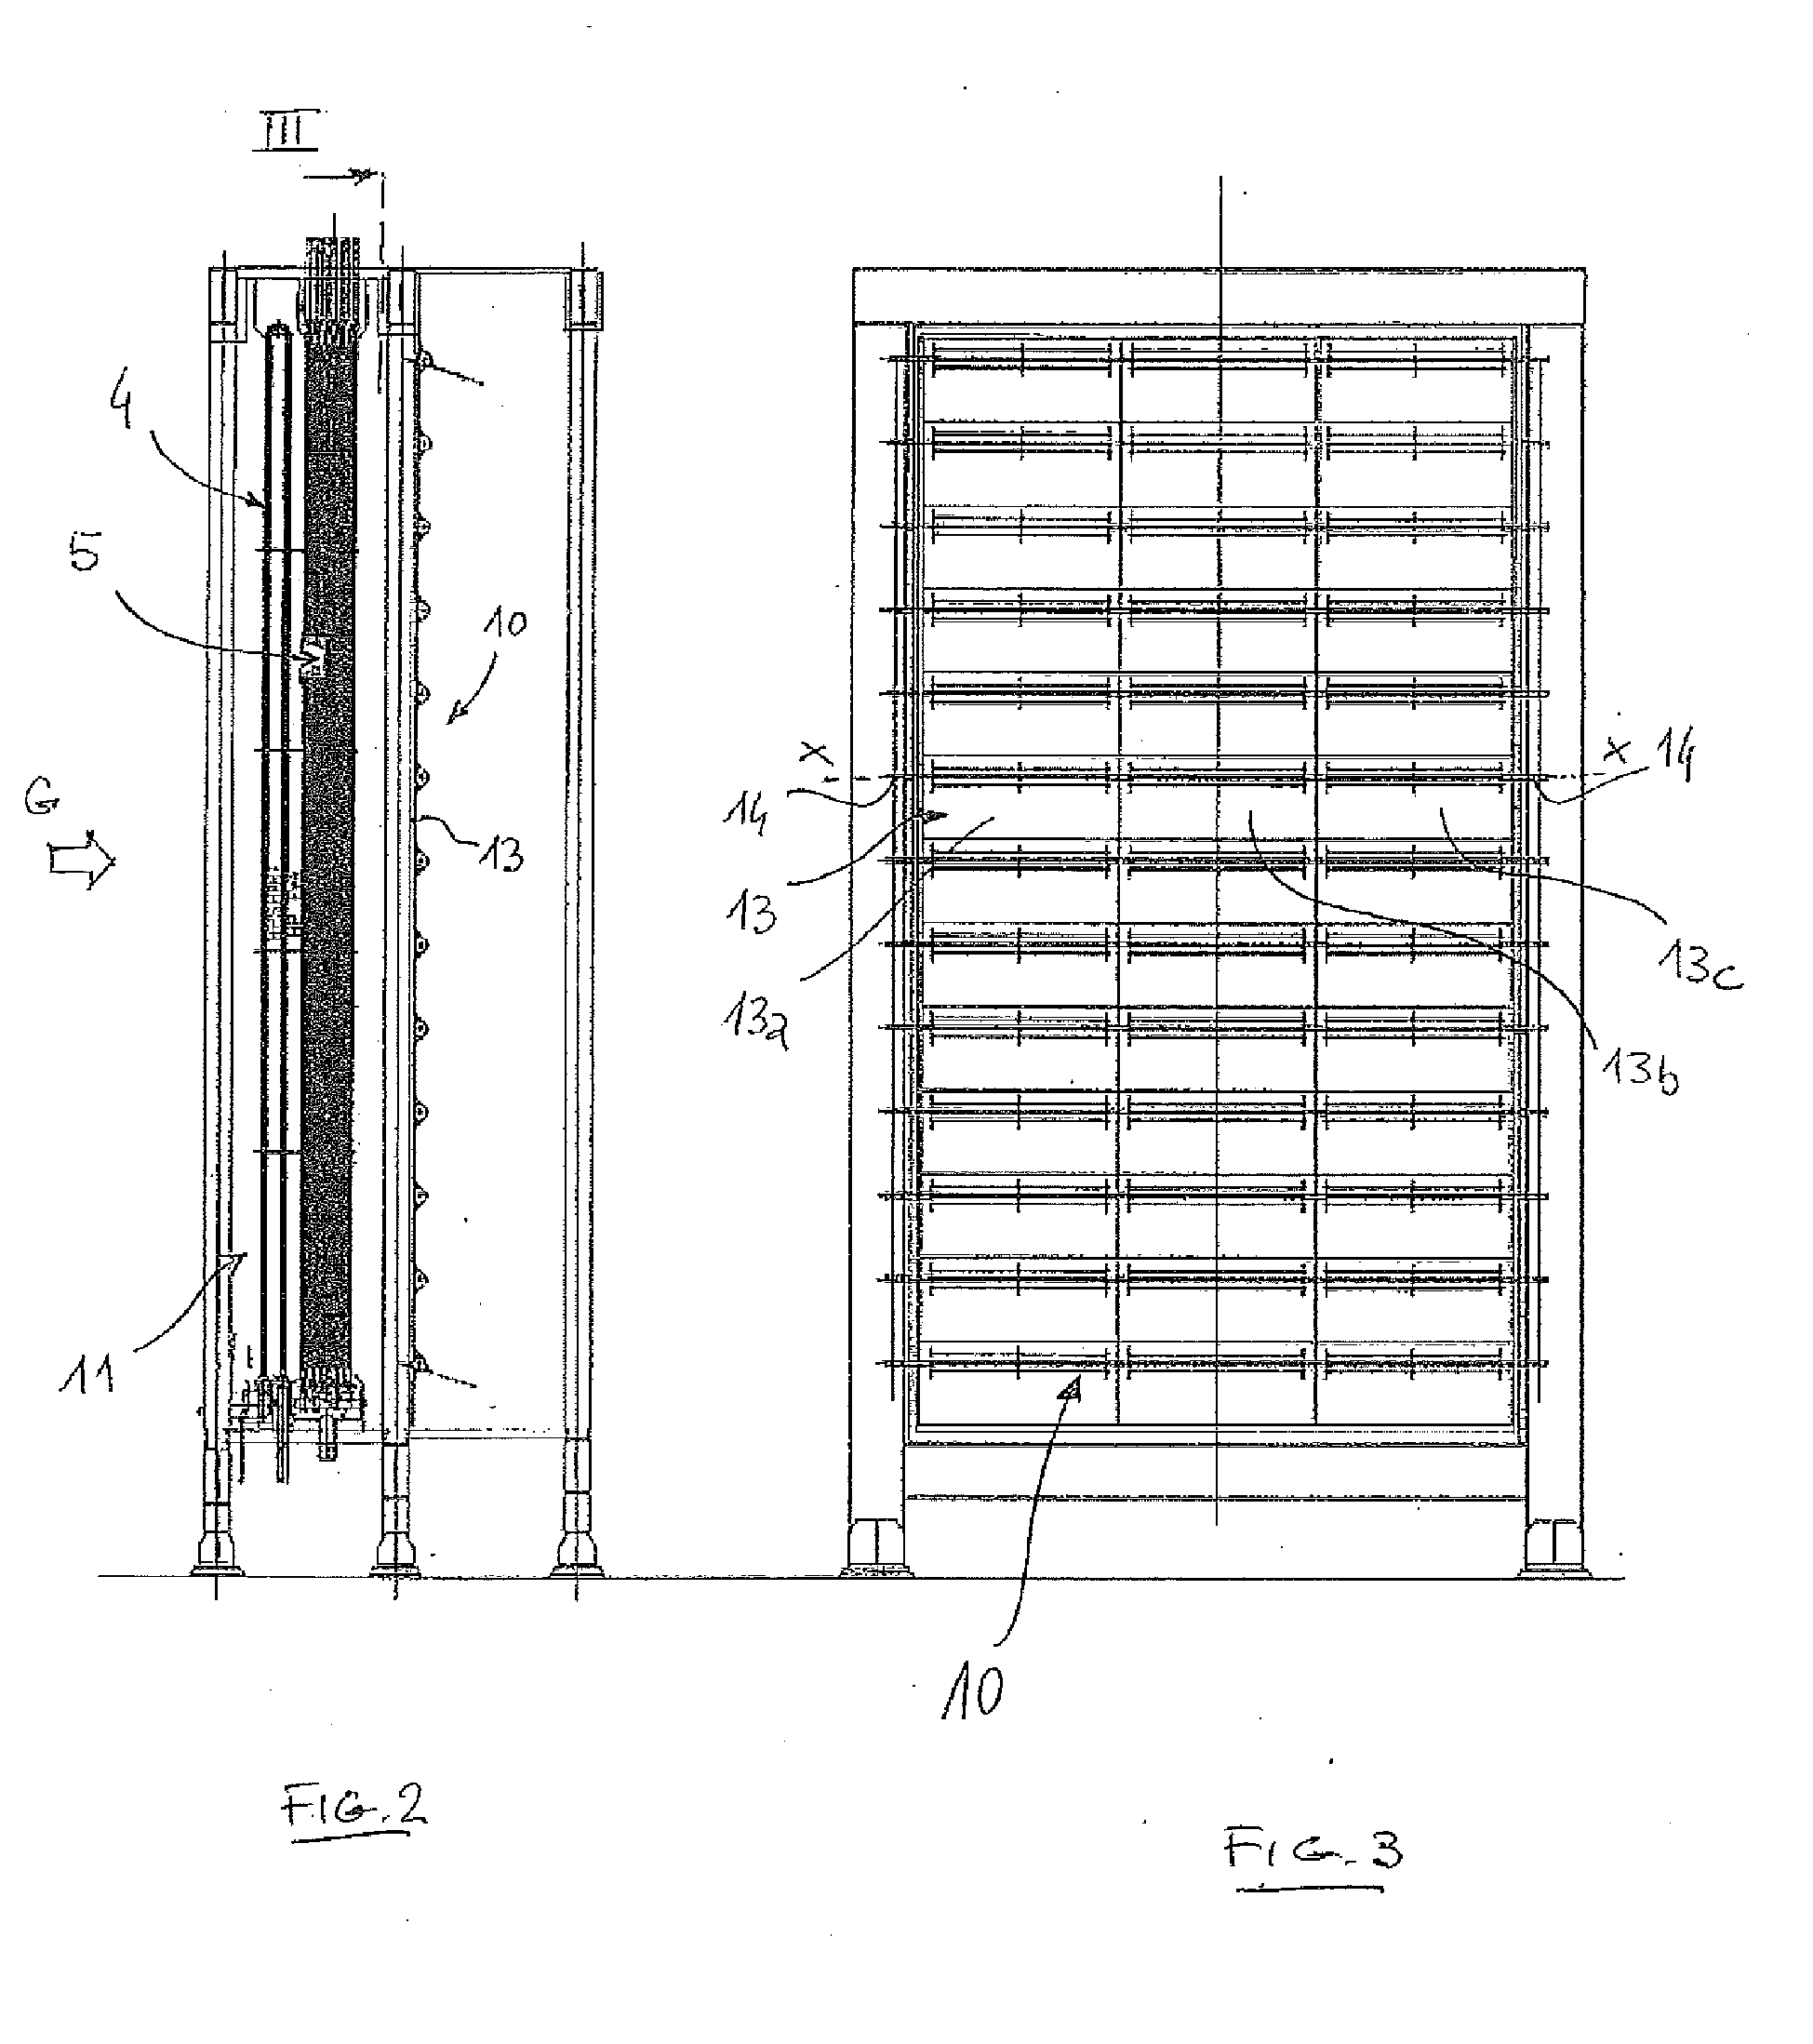 Patent EP A1 Heat recovery steam generator and method for